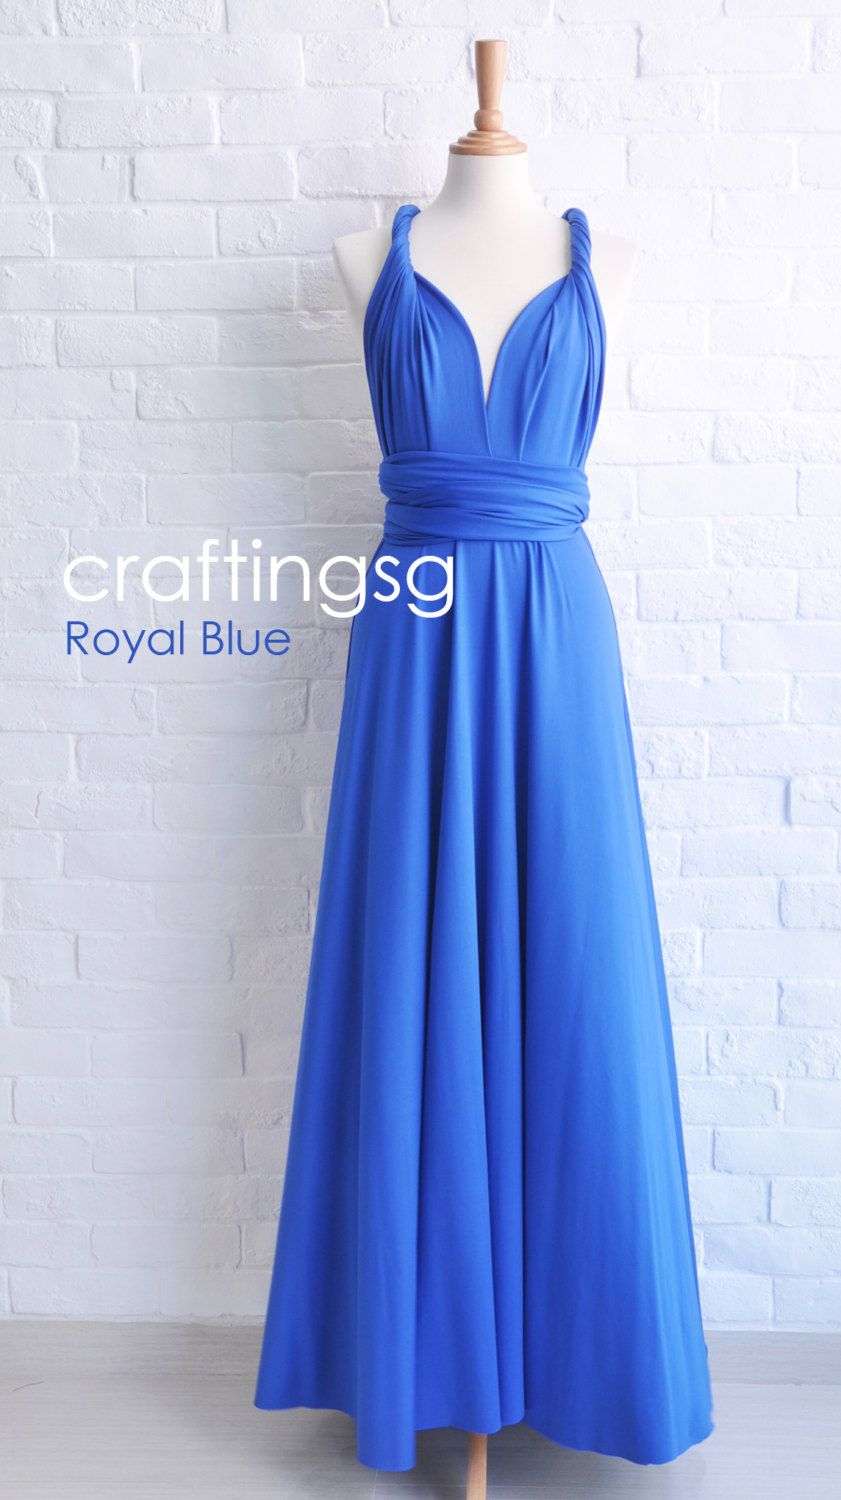 Bridesmaid Dress Infinity Dress Royal Blue Floor by craftingsg, $50.00